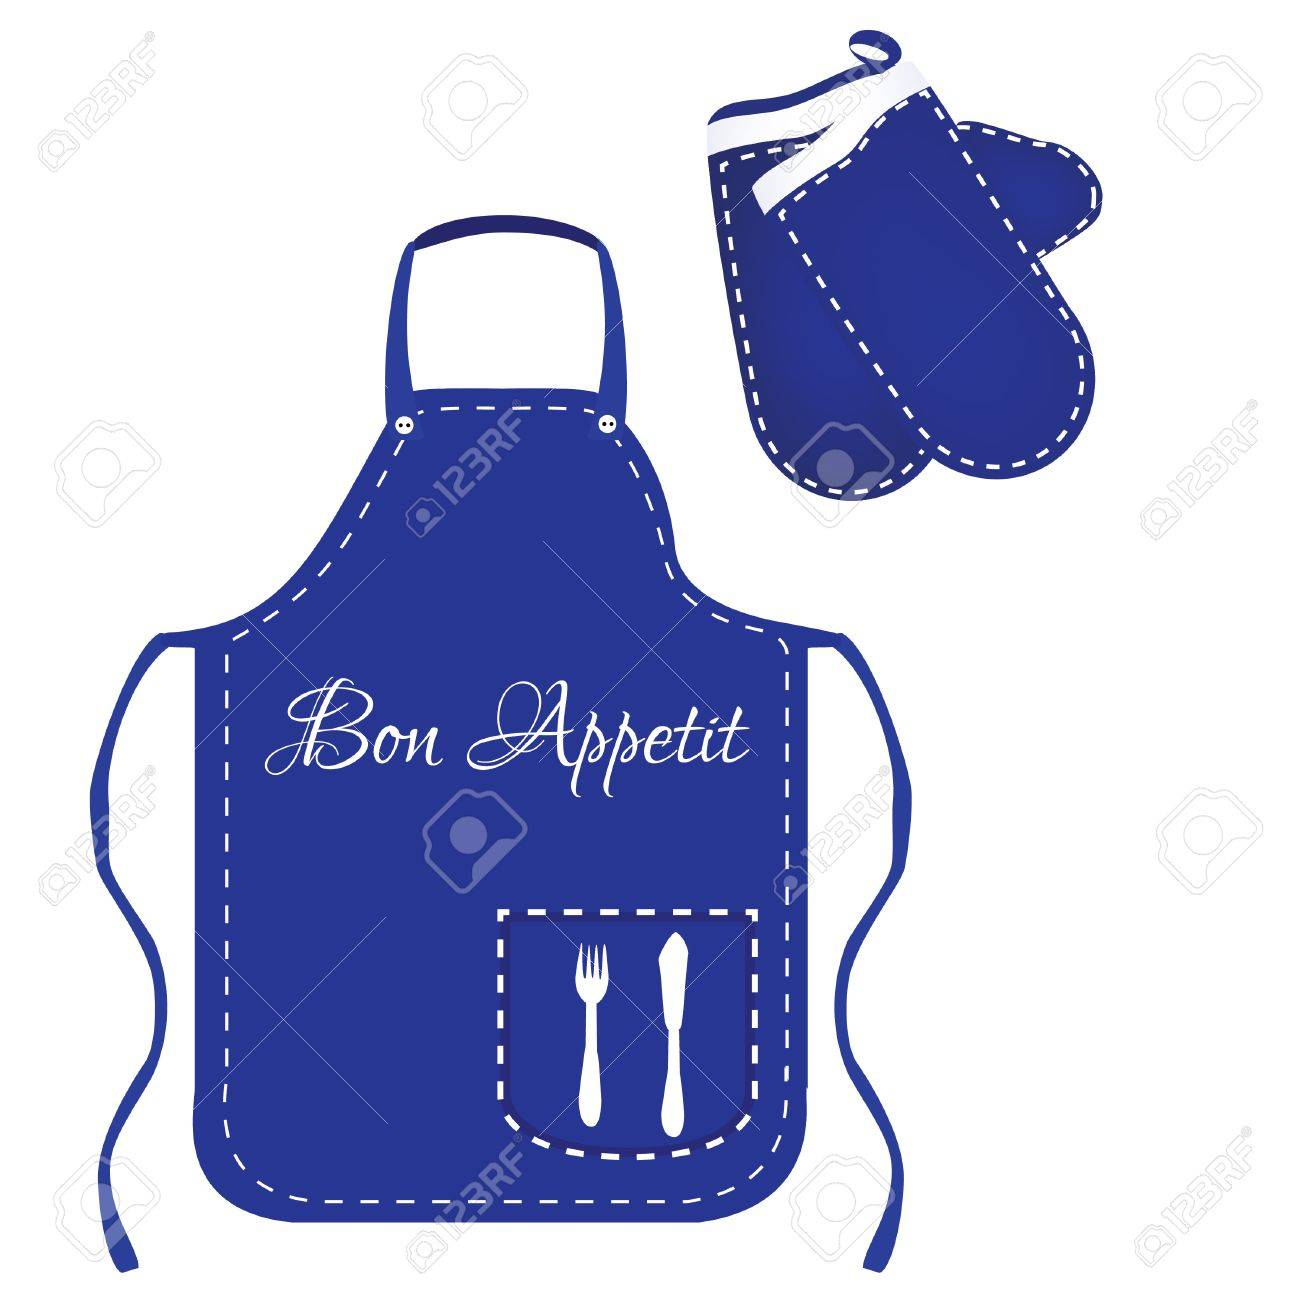 Blue Apron, Chef Apron, Kitchen Apron, Kitchen Mittens, Mittens Vector,  Apron